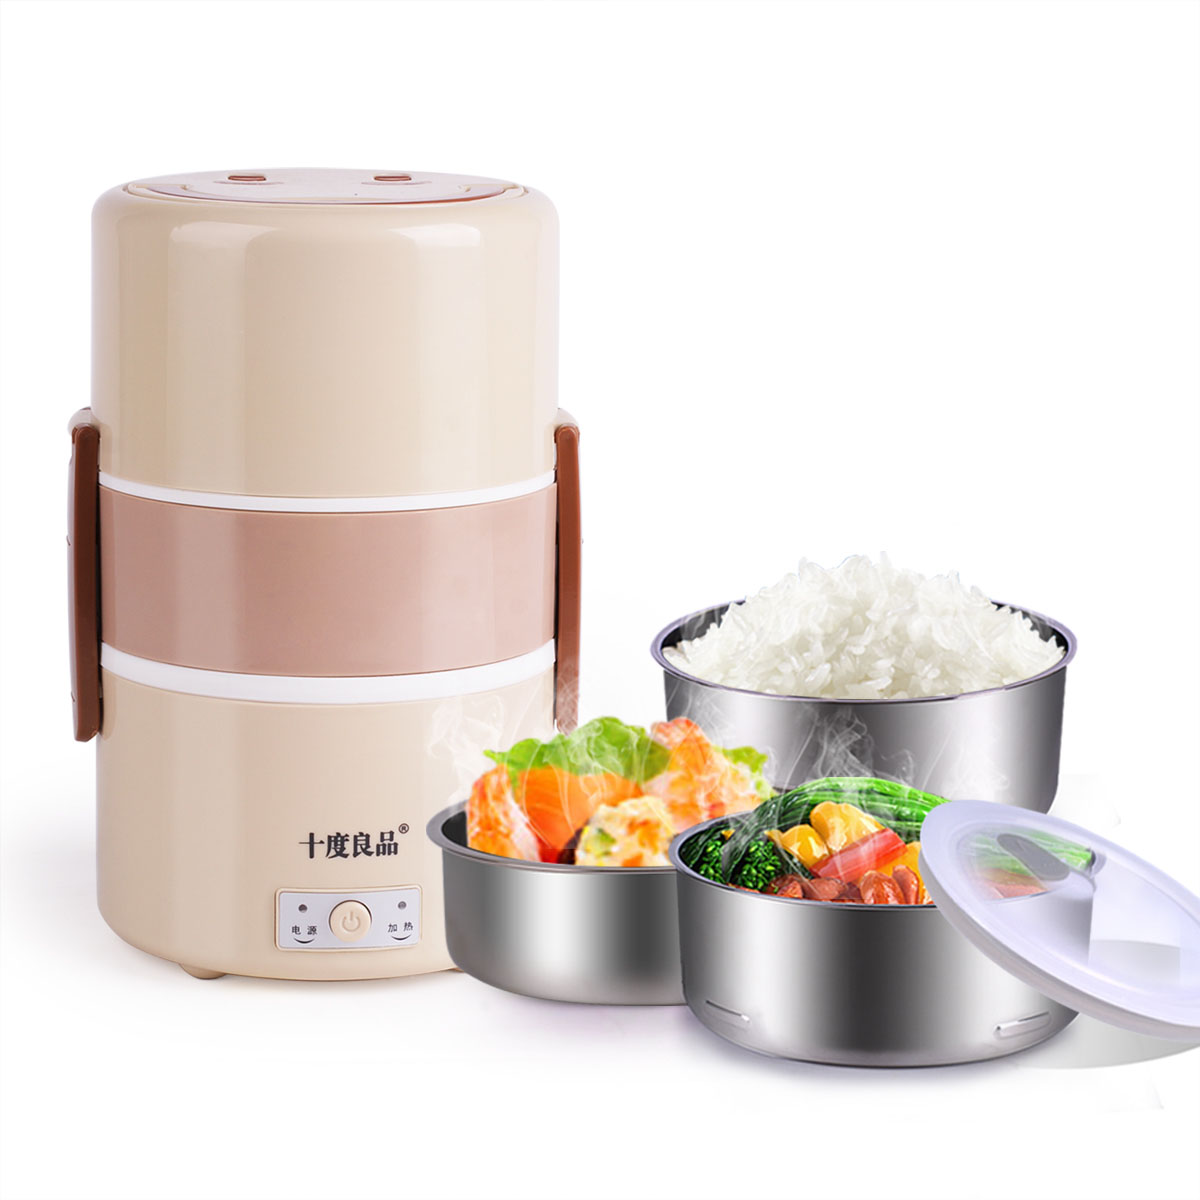 Electric Lunchbox Plug In Insulation Heating Lunch Box Stainless Steel Three Layers Steamed Rice 1.8L 1-2 People aaa quality thermal insulated 3d print neoprene lunch bag for women kids lunch bags with zipper cooler insulation lunch box